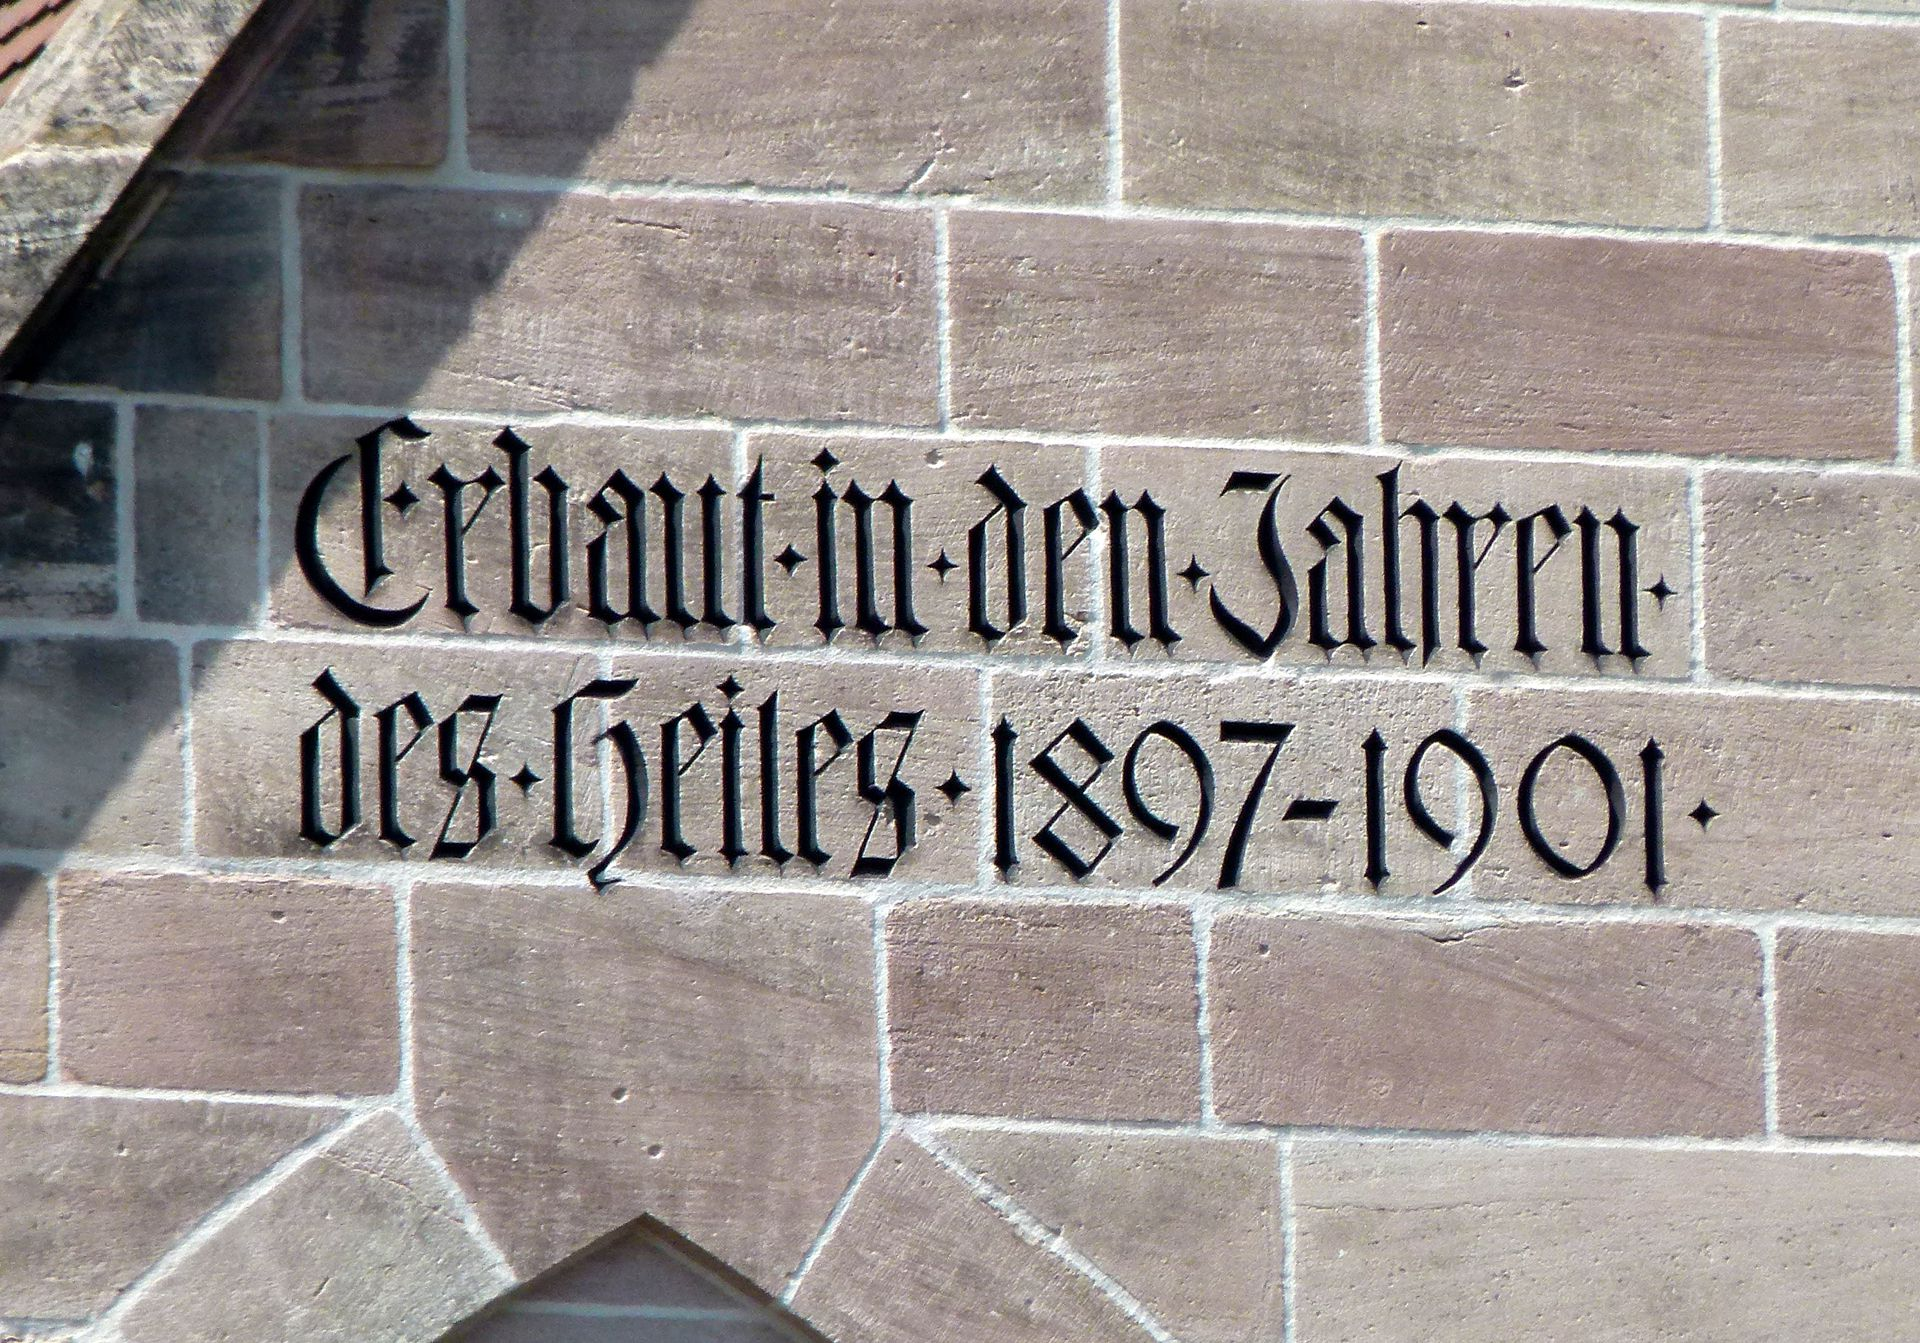 St. Peter Church Building inscription on the front